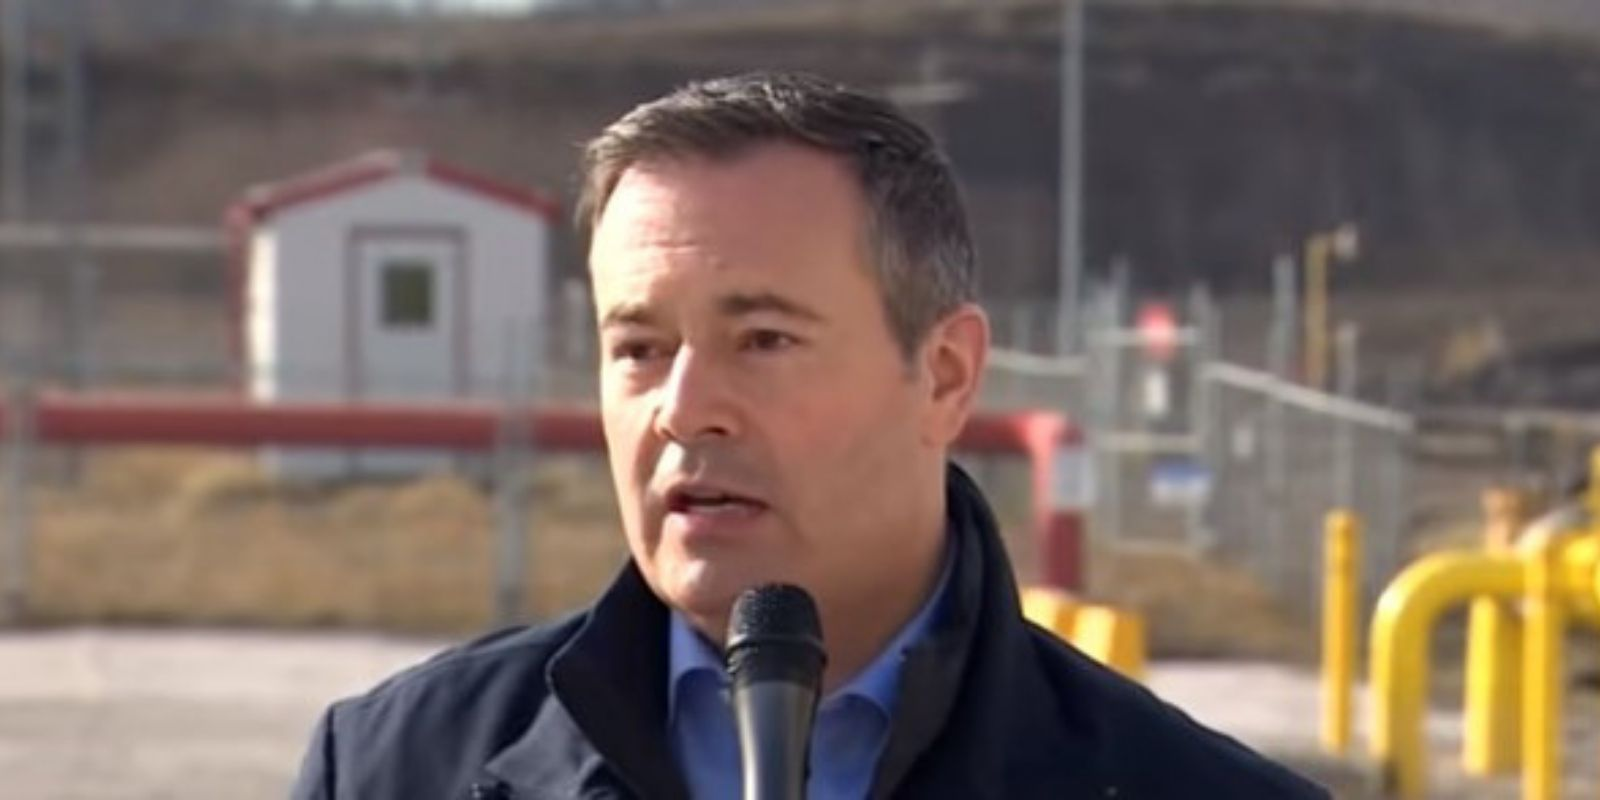 No wonder Alberta's furious: Kenney calls for referendum on equalization while Quebec receives $13 billion in 2019